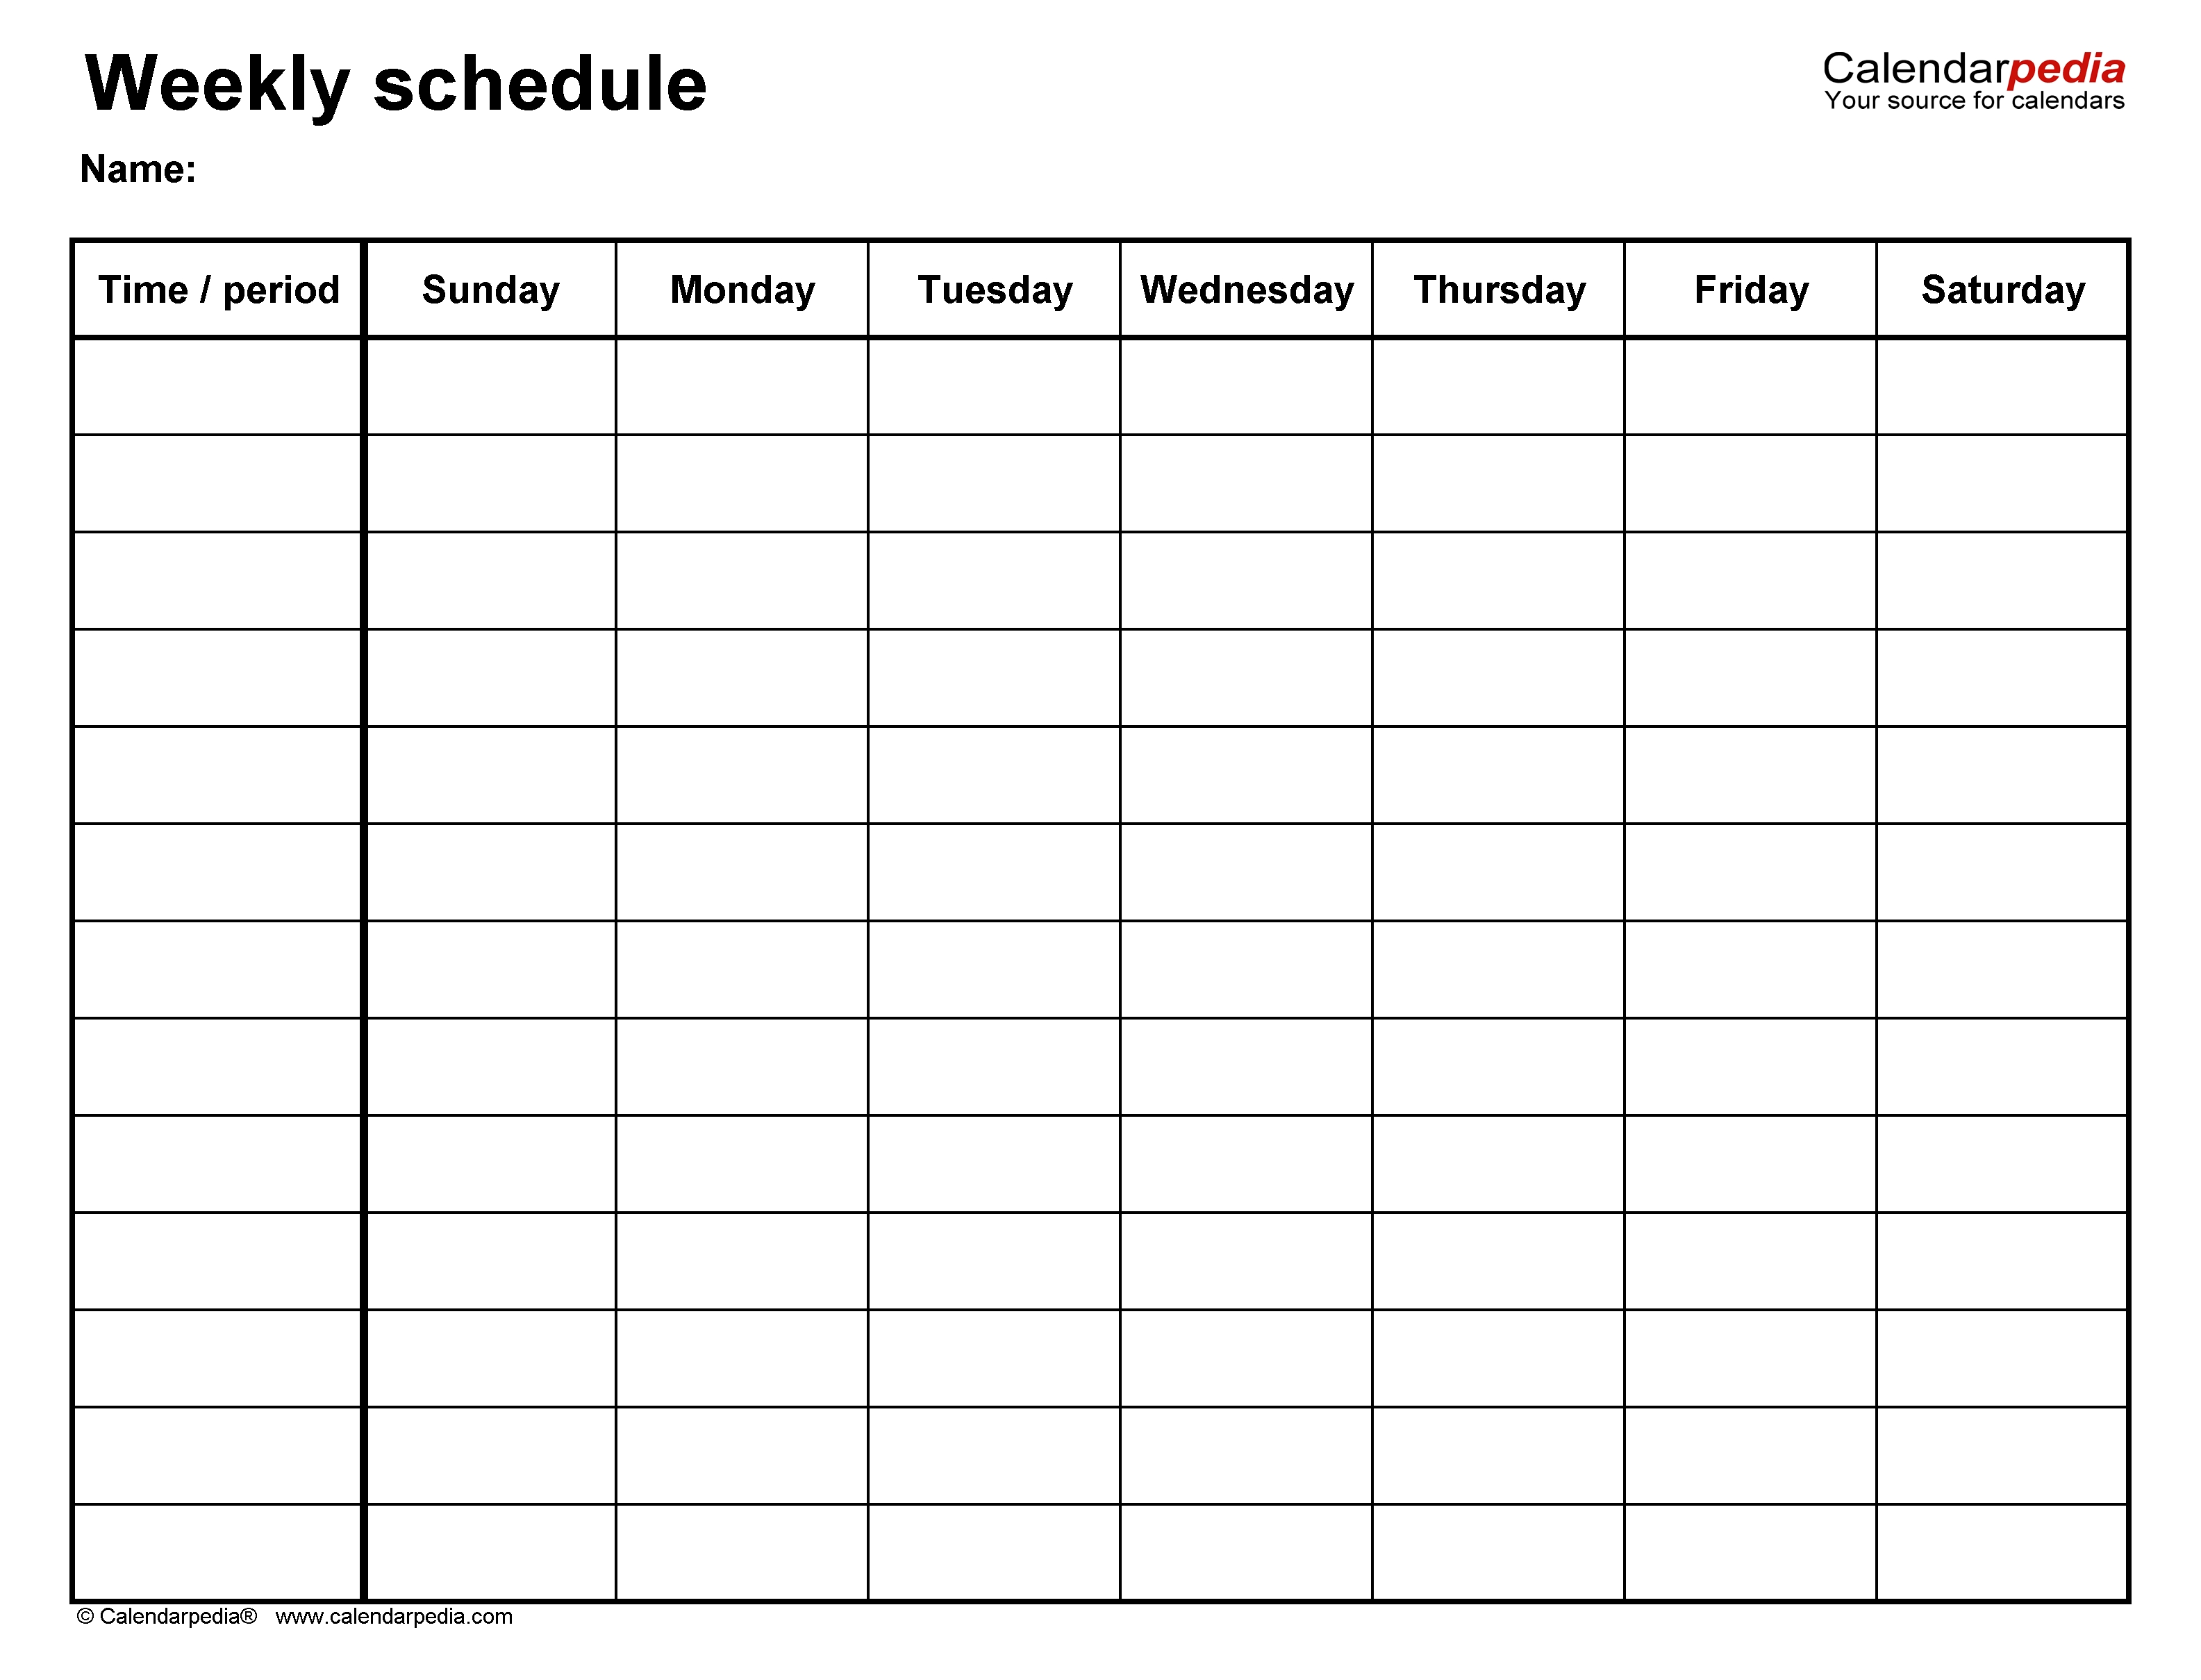 Free Weekly Schedule Templates For Word - 18 Templates  7 Day Planner Printable